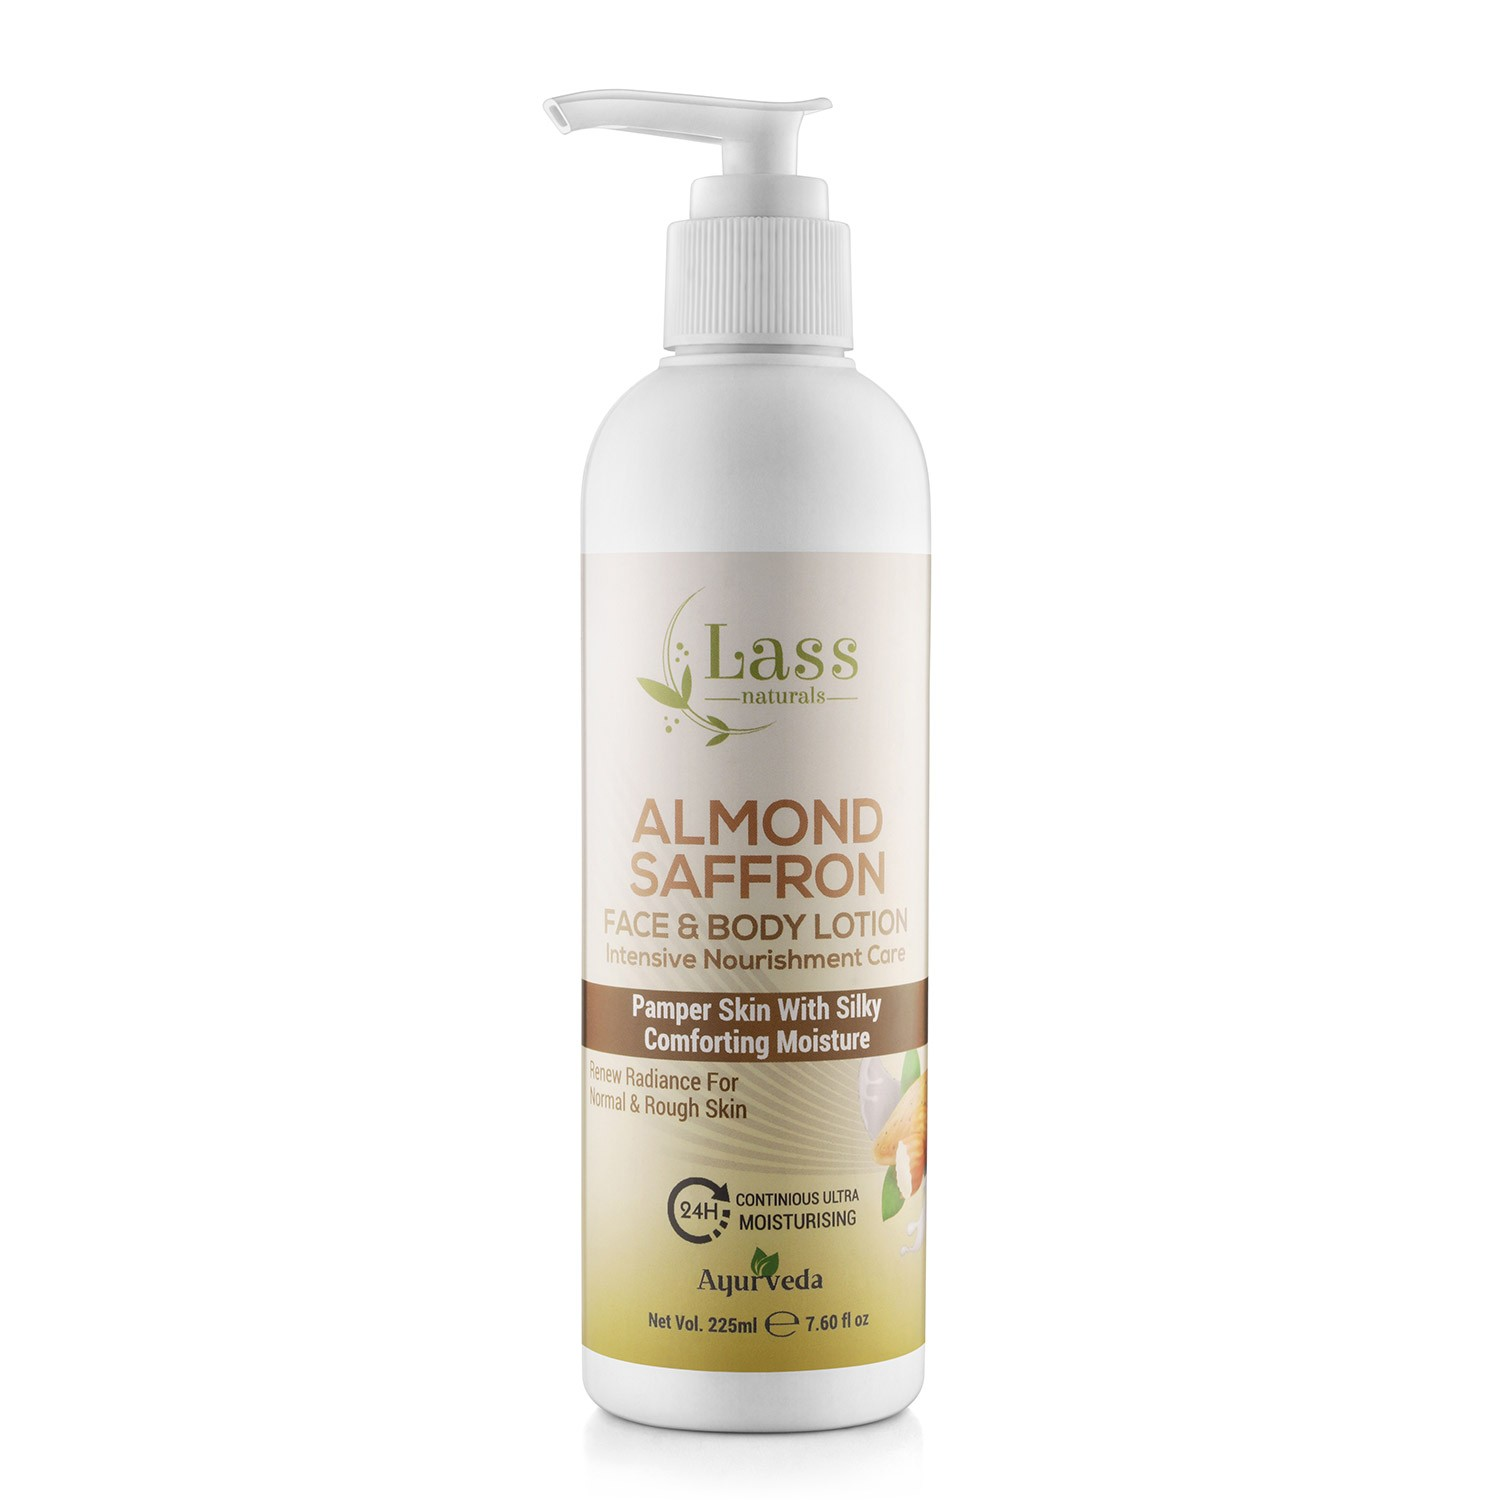 Almond Saffron Face & Body Moisturising Lotion